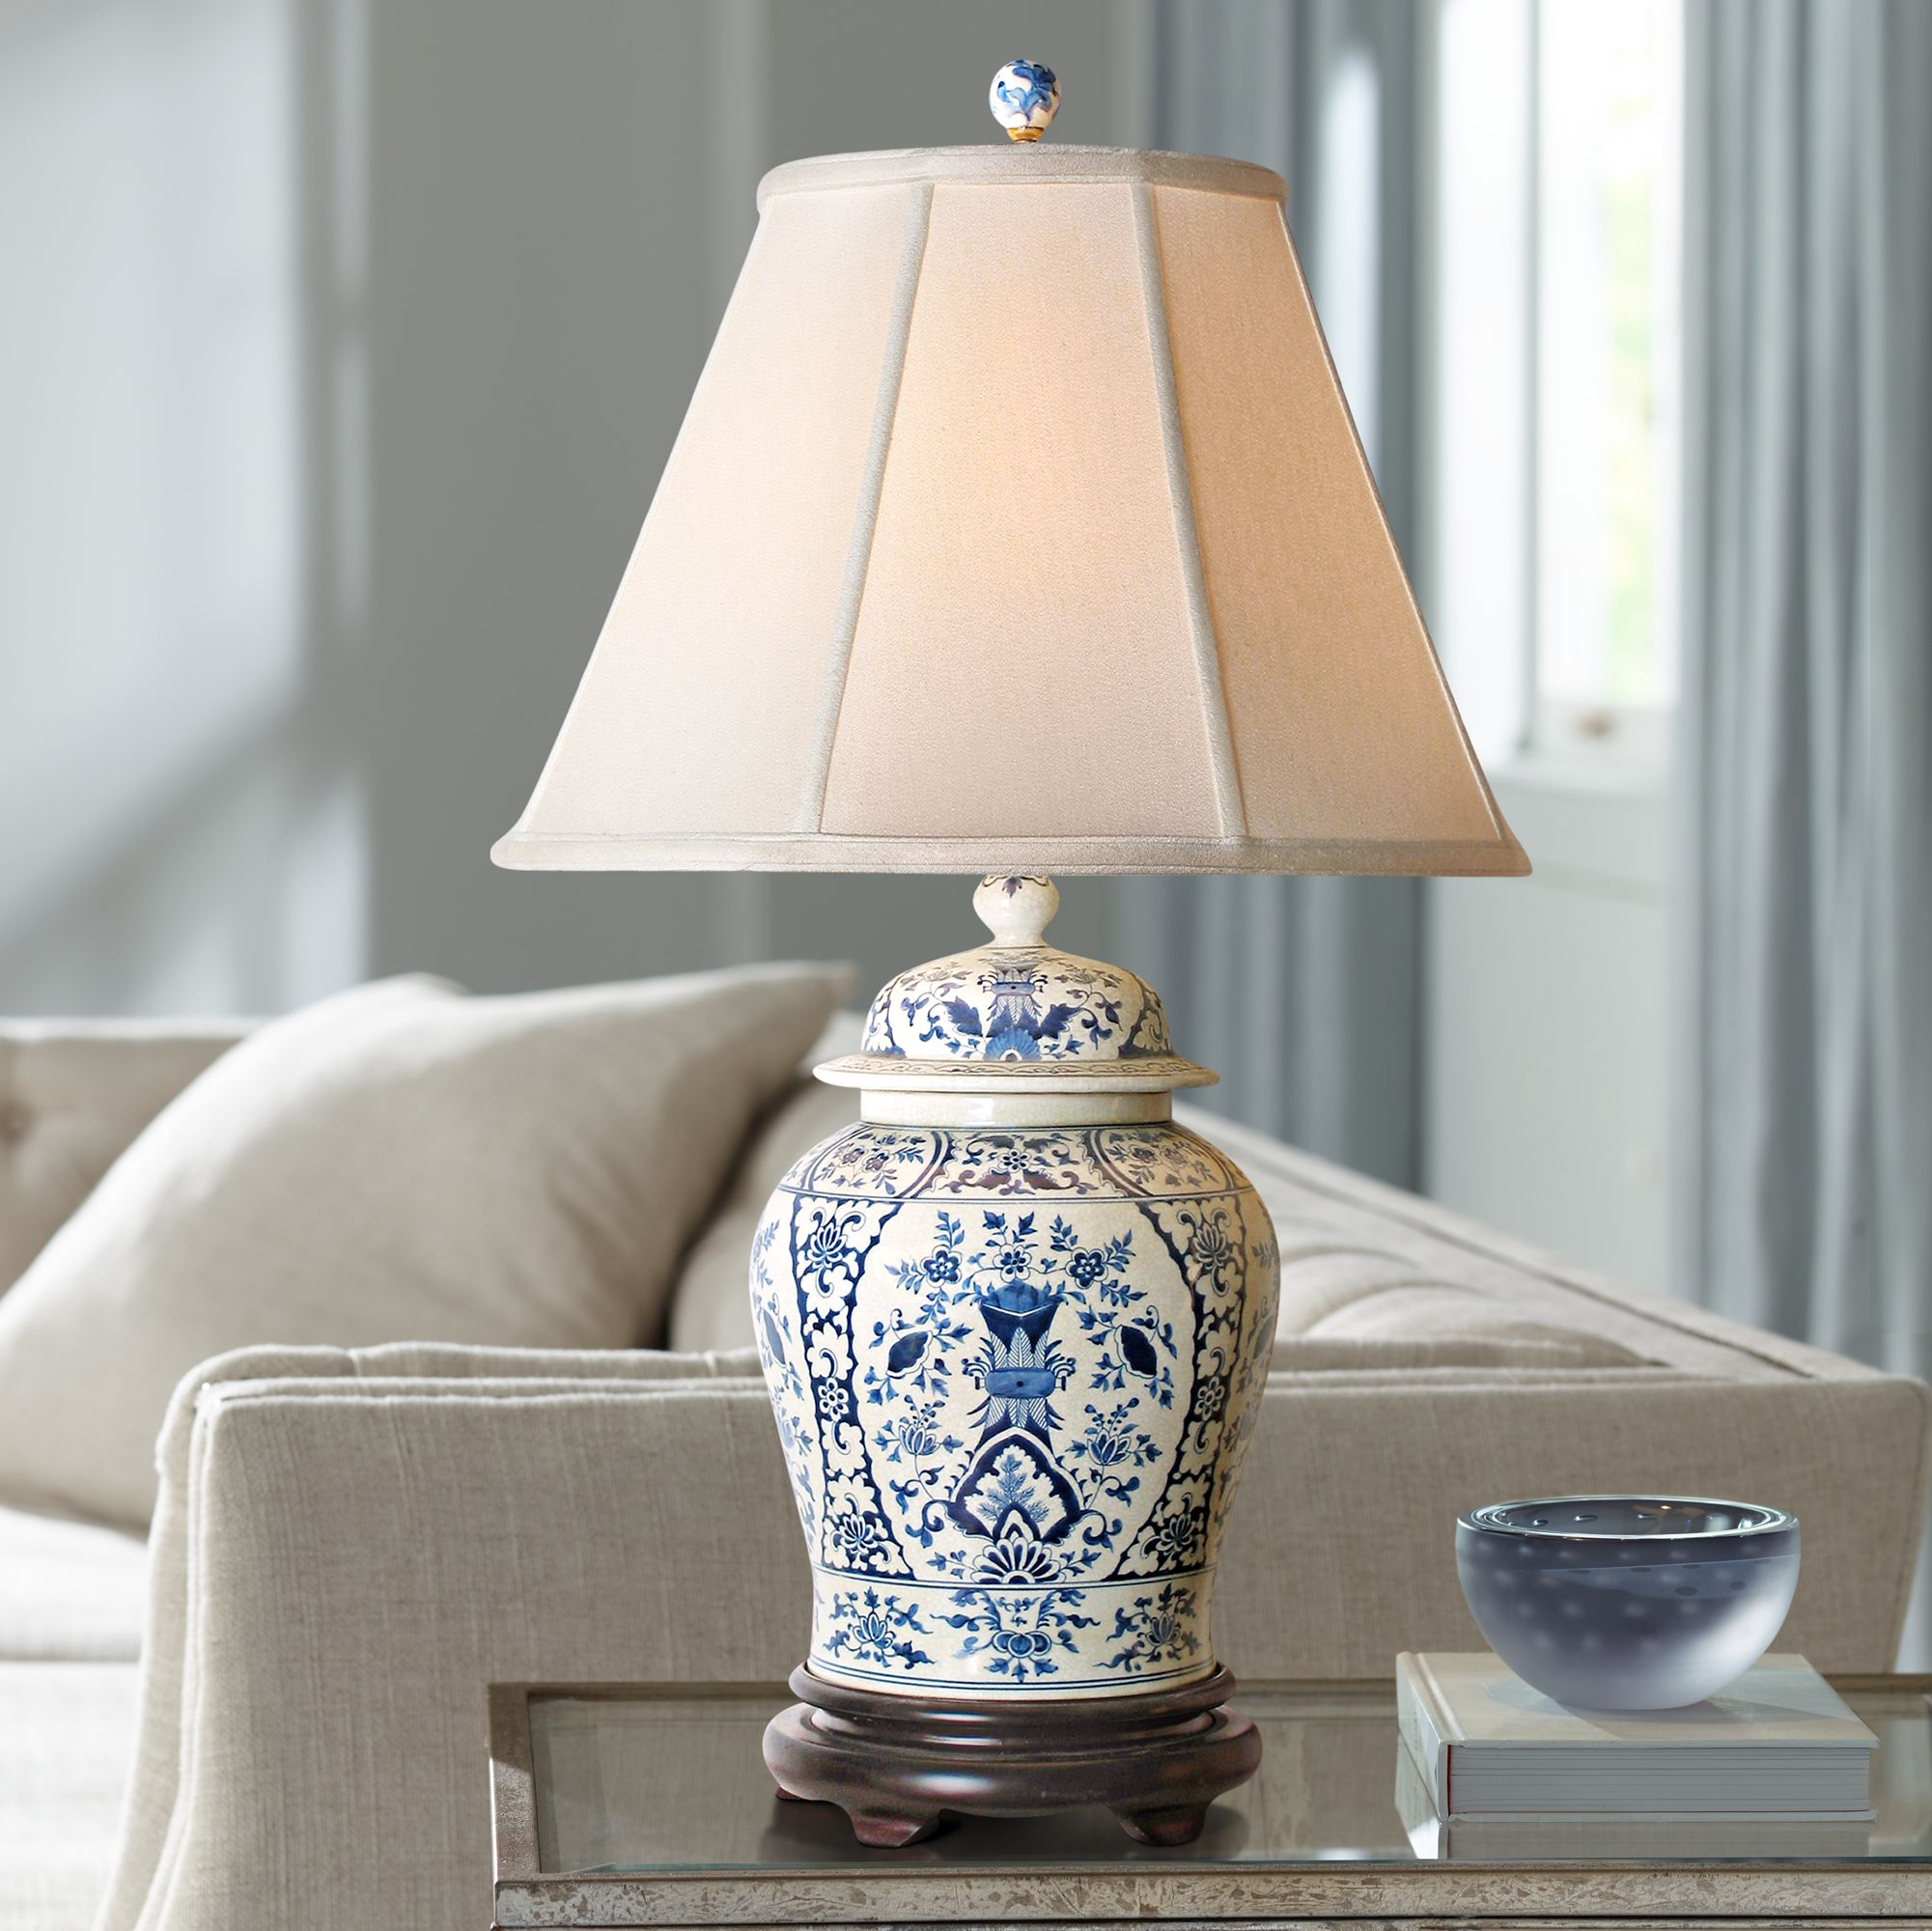 Beau English Blue And White Porcelain Temple Jar Table Lamp